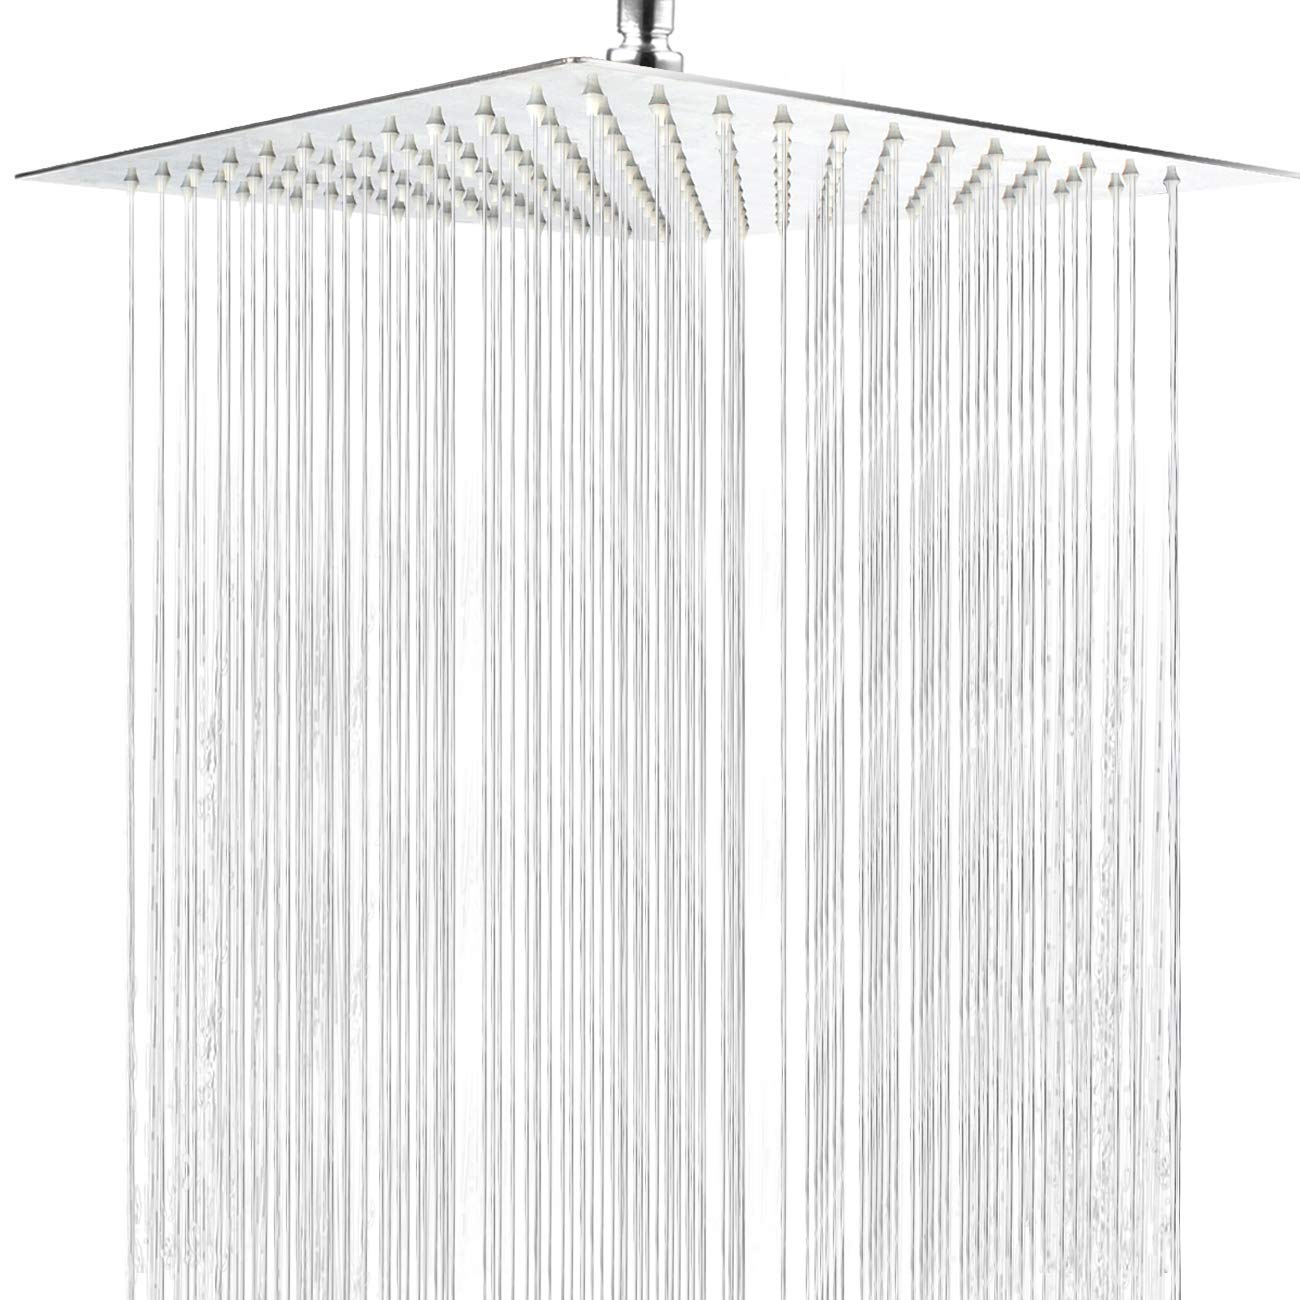 Shower Head,12 Inch Large Square Rainfall Showerhead Stainless Steel High Pressure With Polish Chrome Finish, Ultra Thin Waterfall Full Body Coverage with Silicone Nozzle